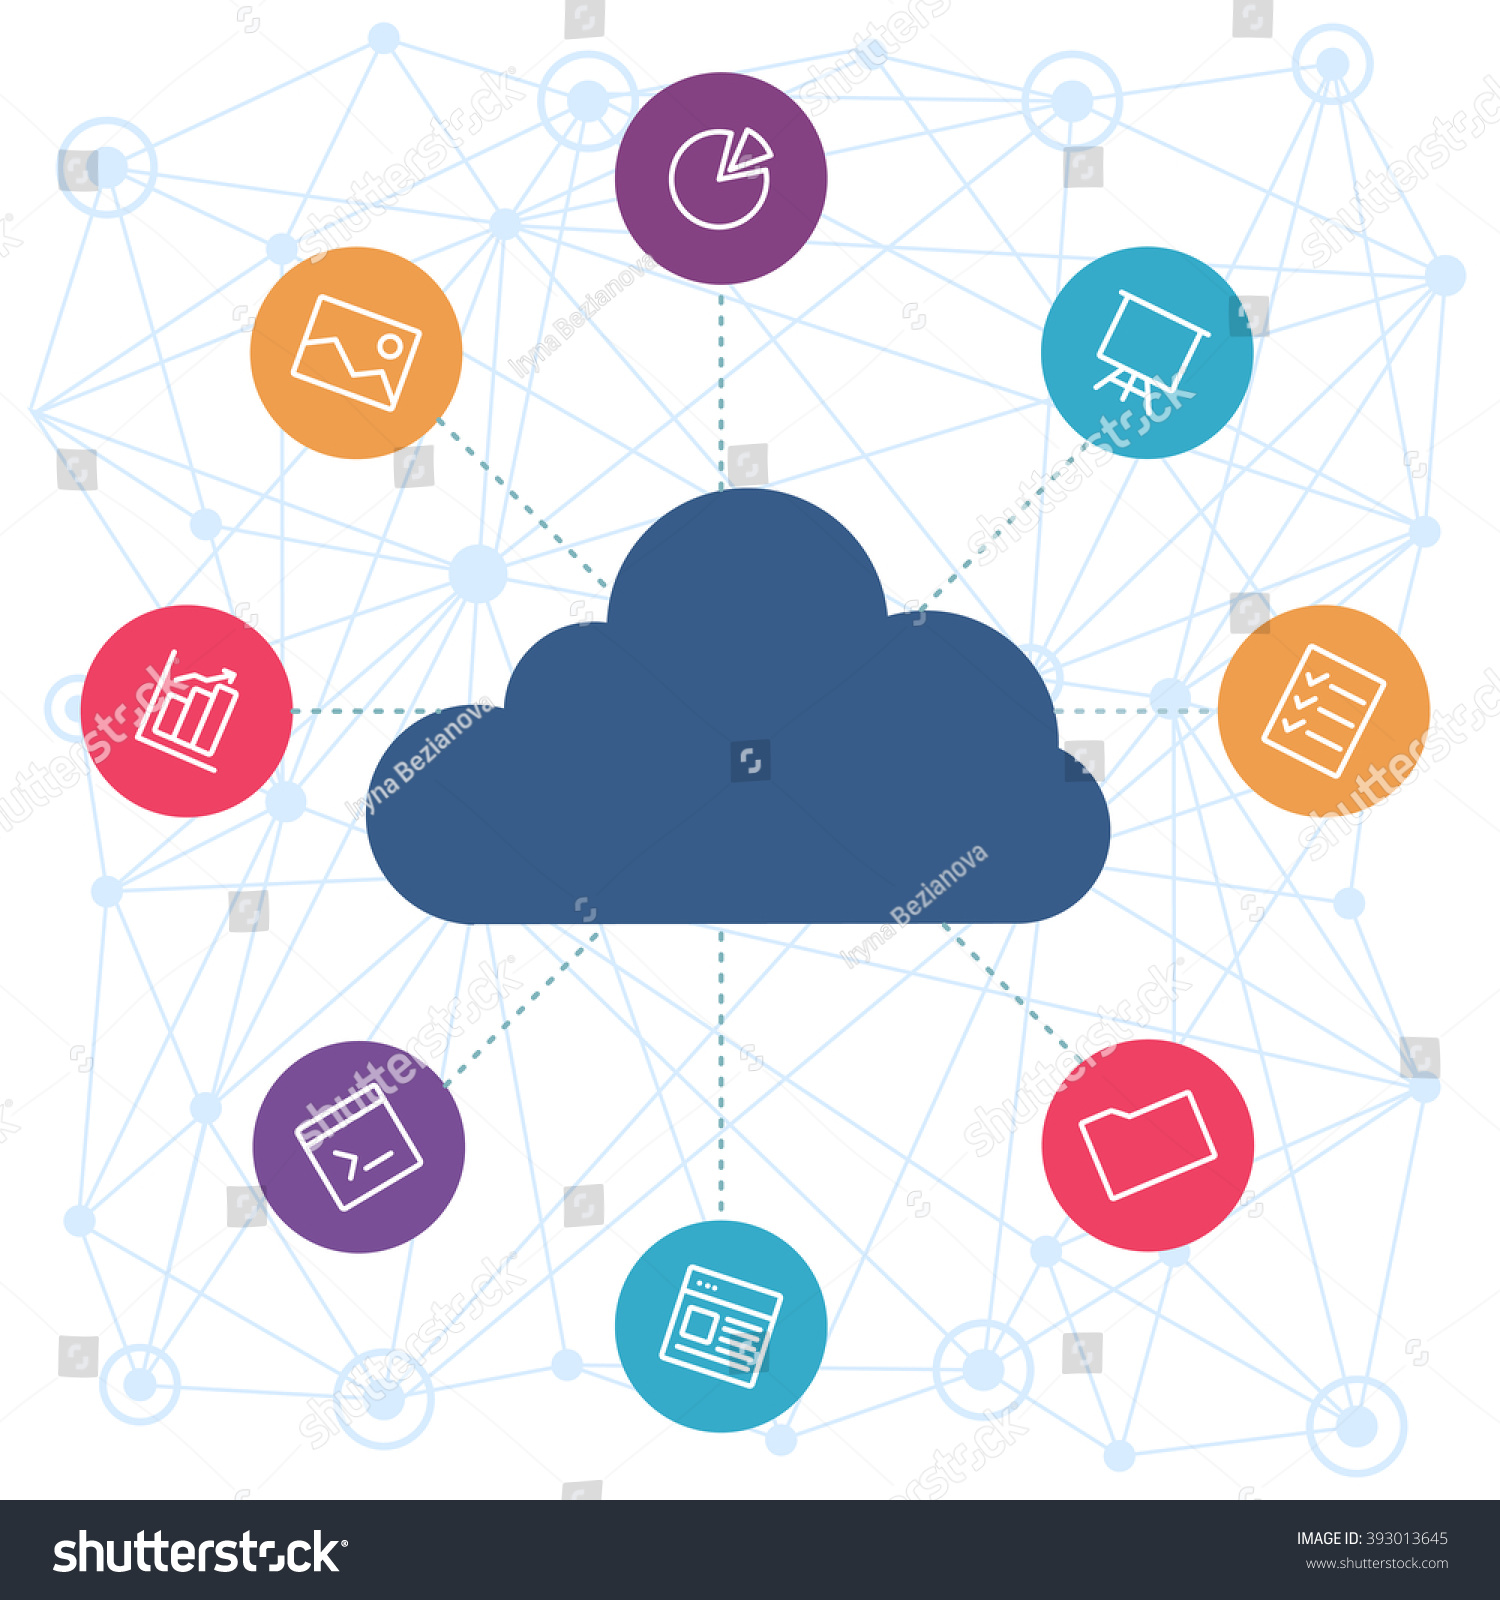 Sharing Files Cloud Backend Service Cloud Stock Vector 393013645 ...